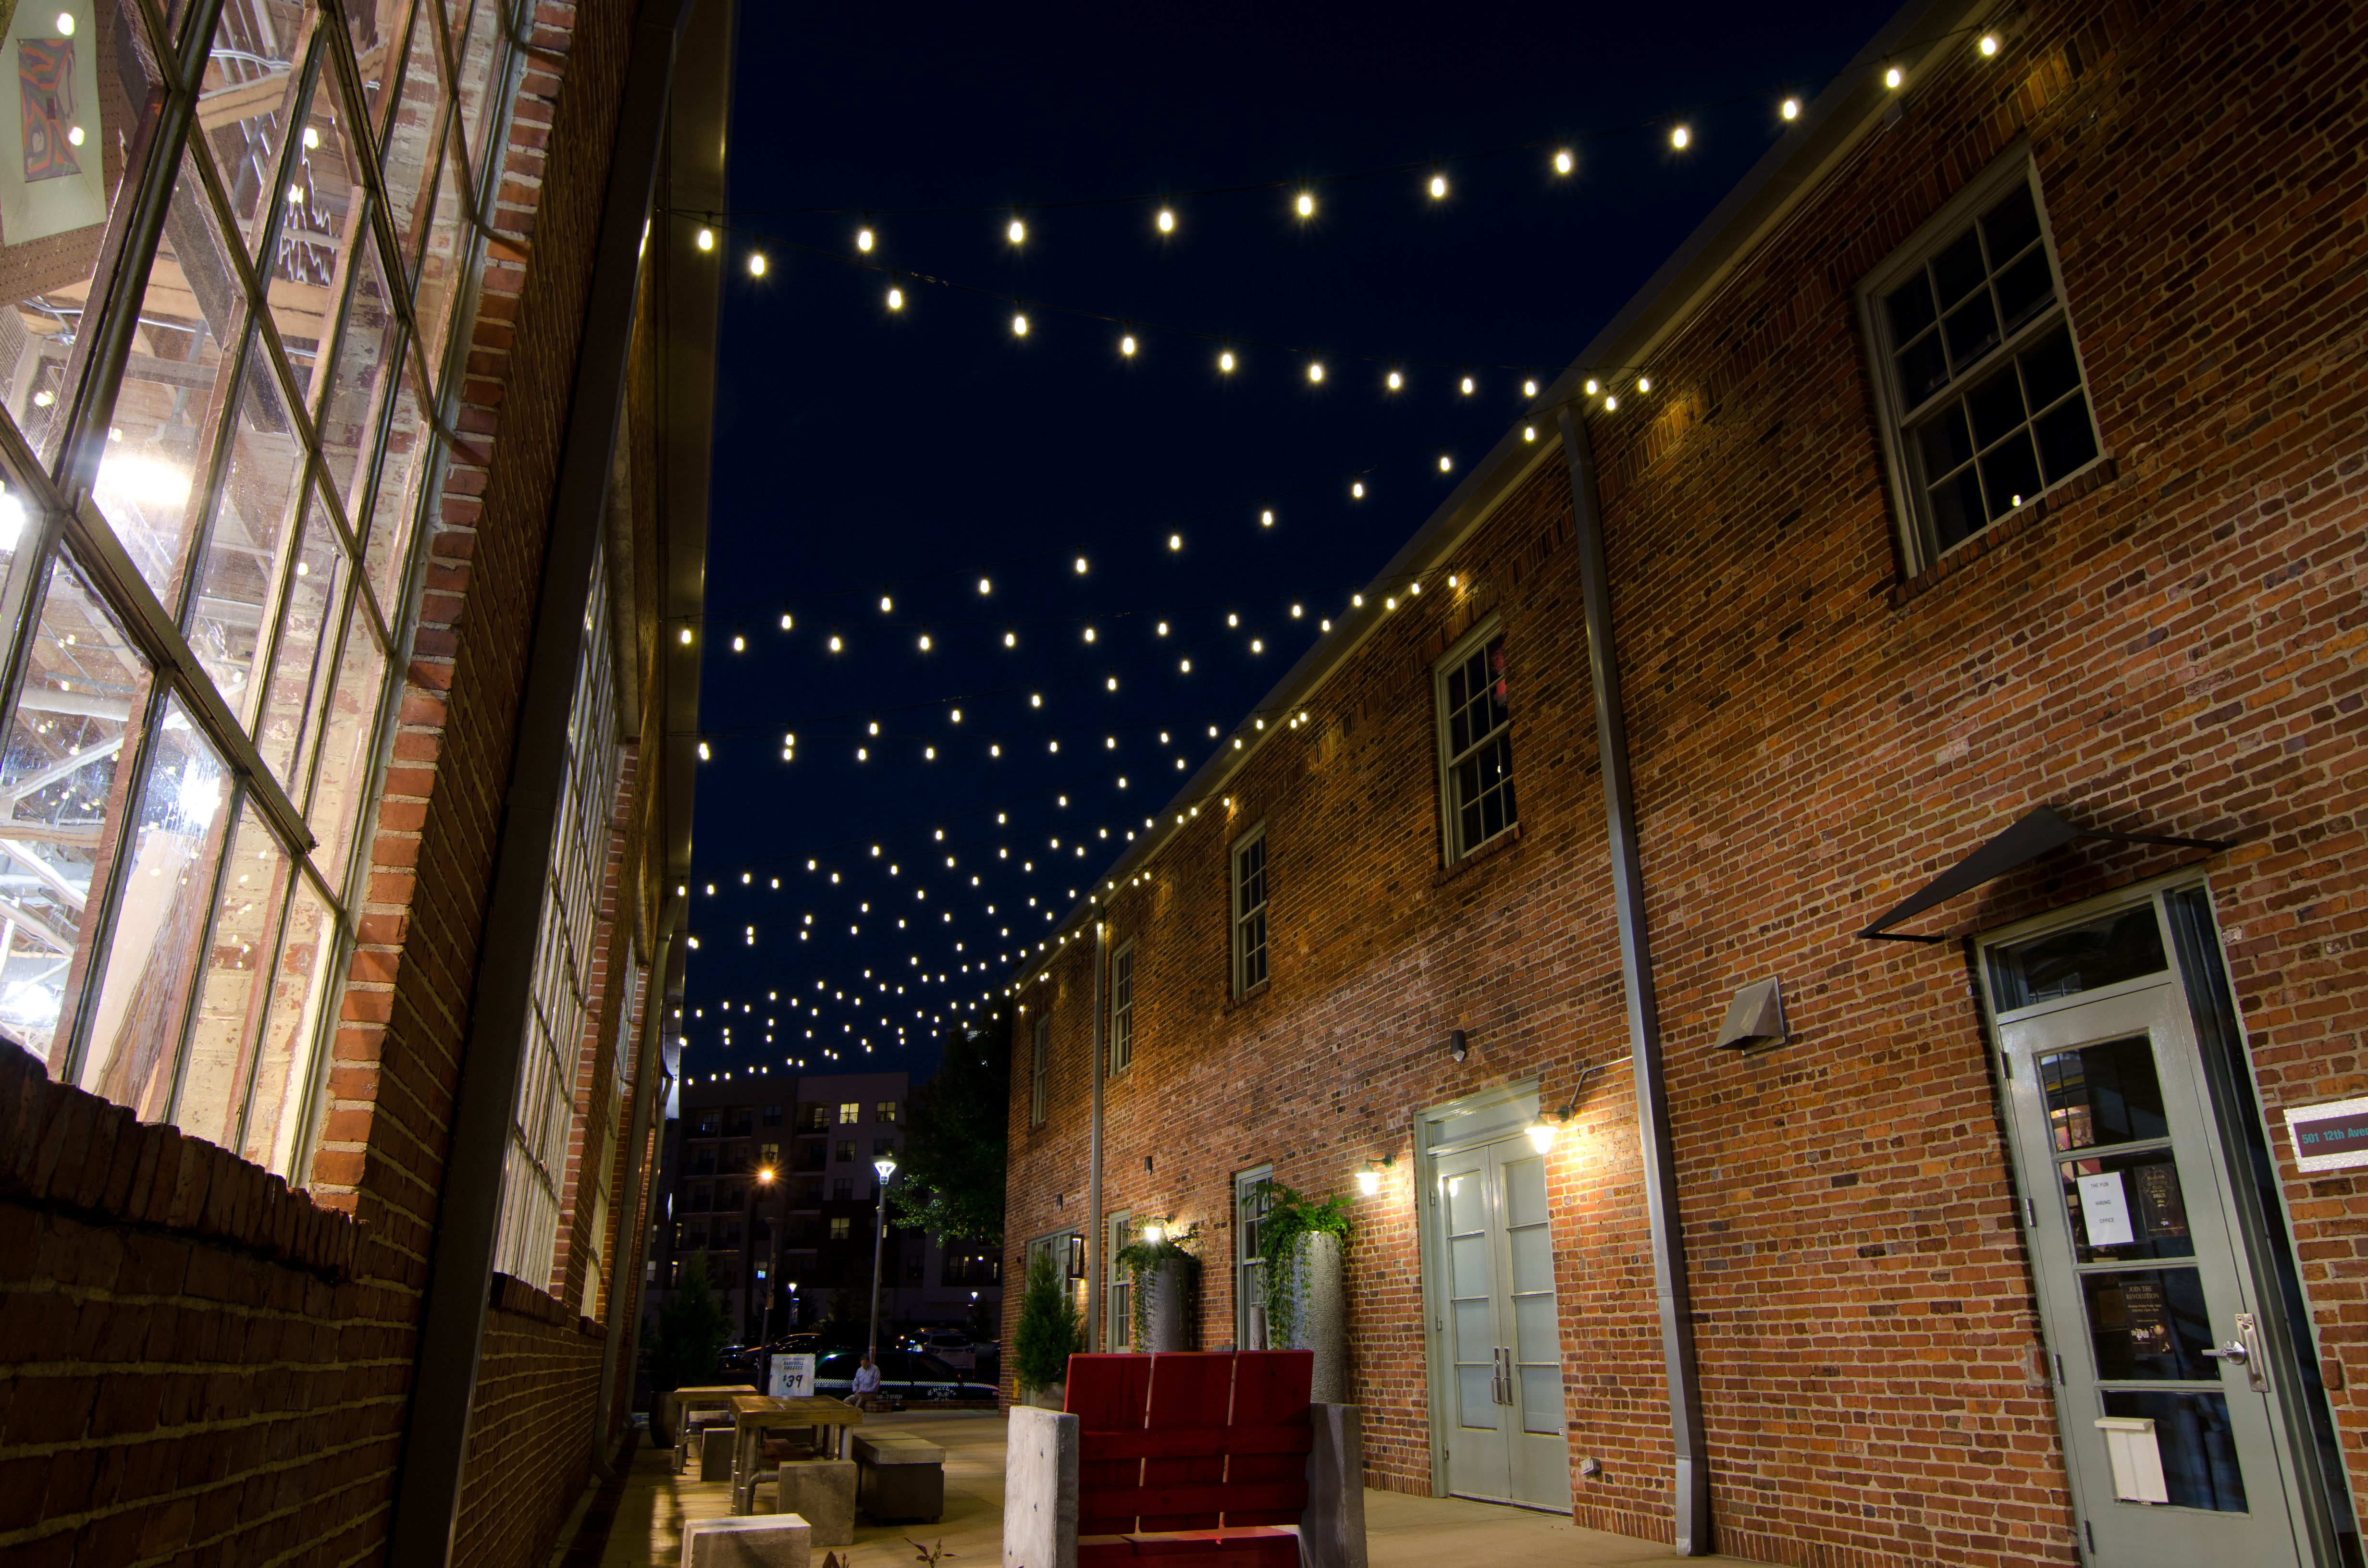 Columbia sc commercial outdoor lighting one of the most popular types of commercial outdoor lighting is festive lighting this is most prominent in restaurants but is catching on in other venues aloadofball Gallery